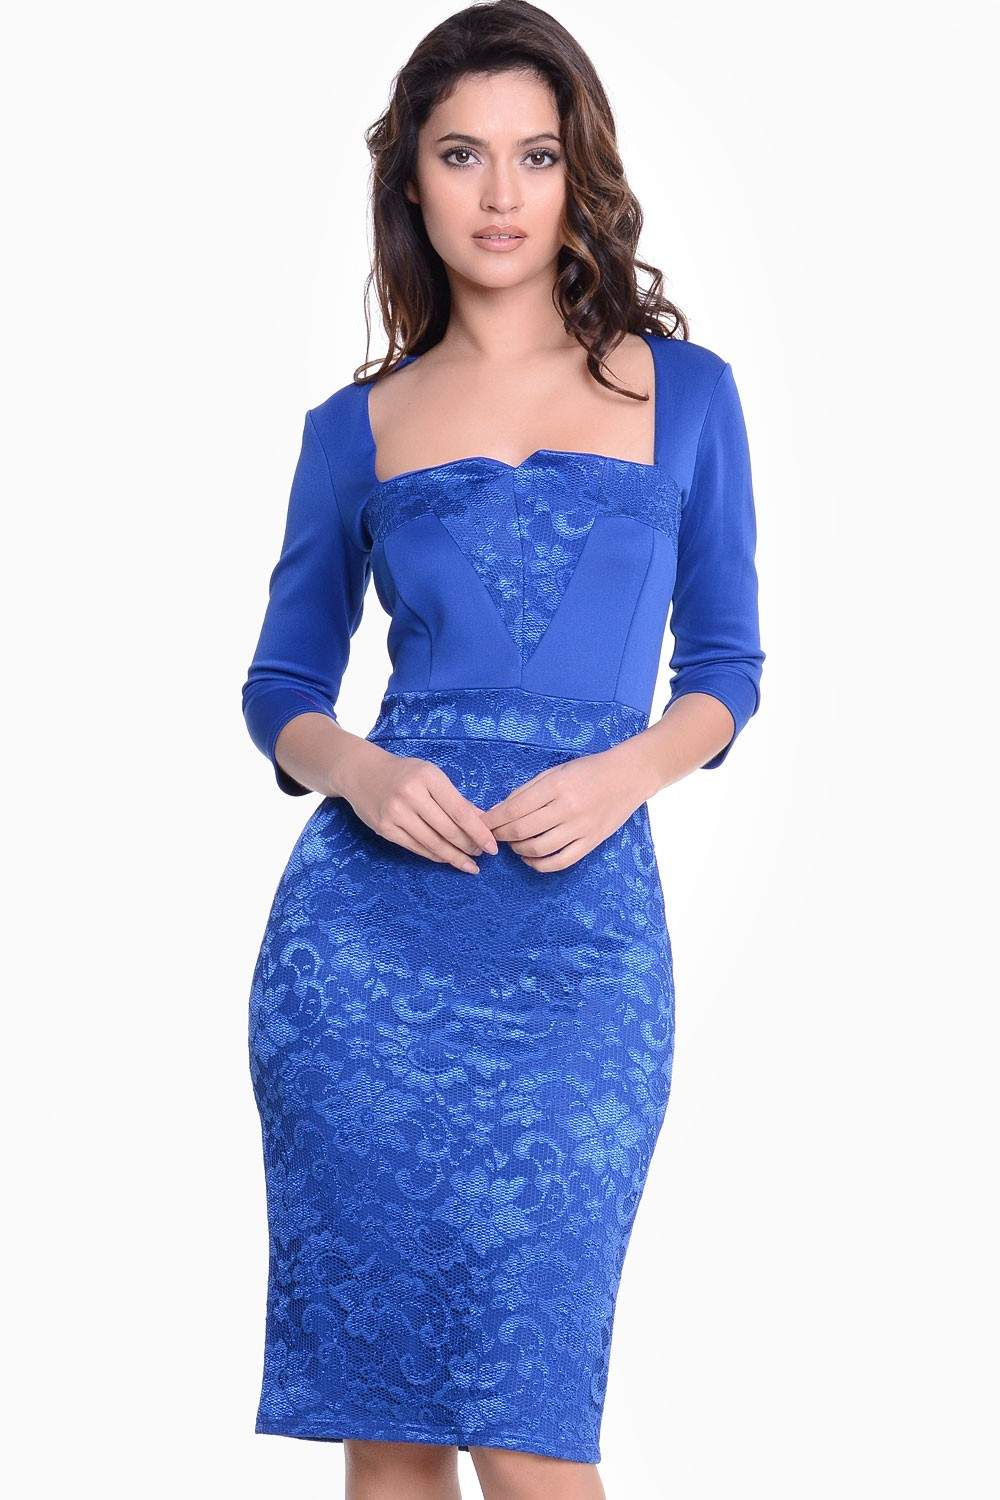 Carmen 3/4 Sleeve Lace Midi Dress in Royal Blue | iCLOTHING